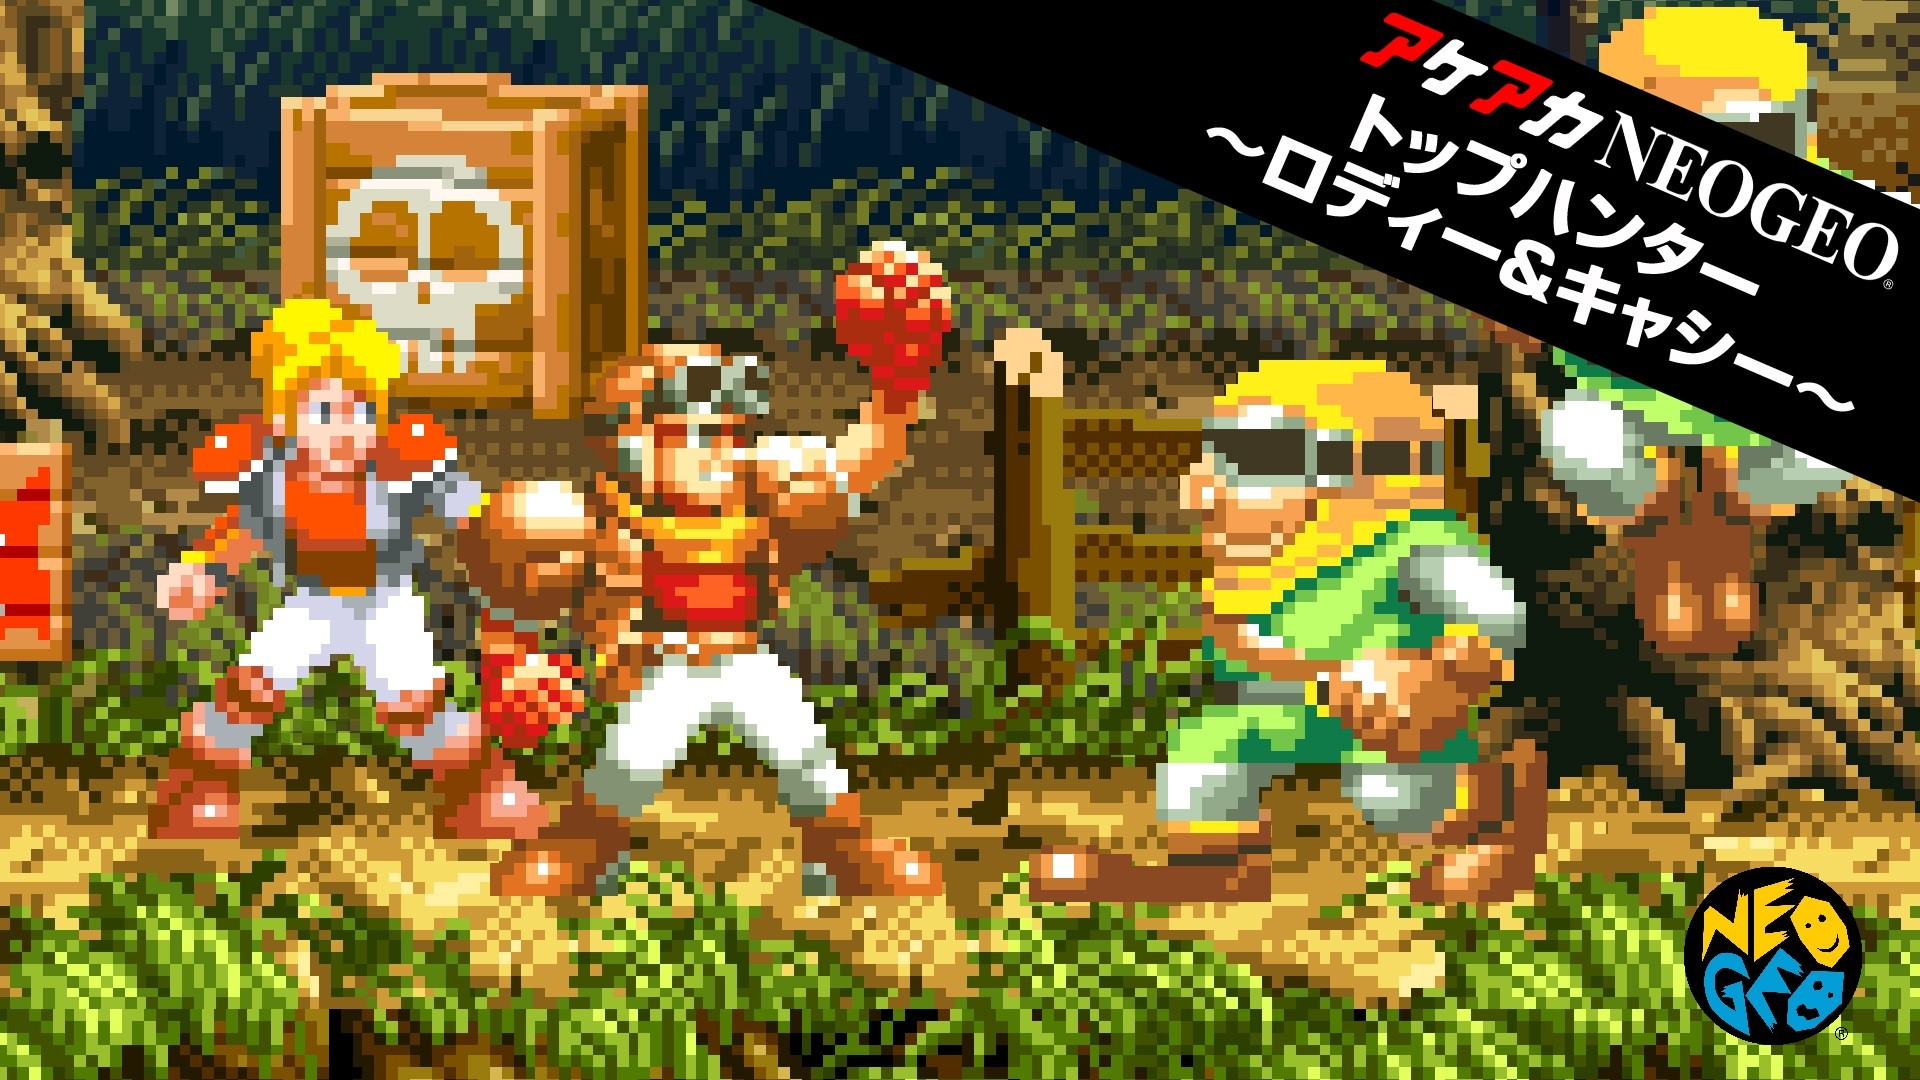 Neo Geo Wallpapers (76+ background pictures)